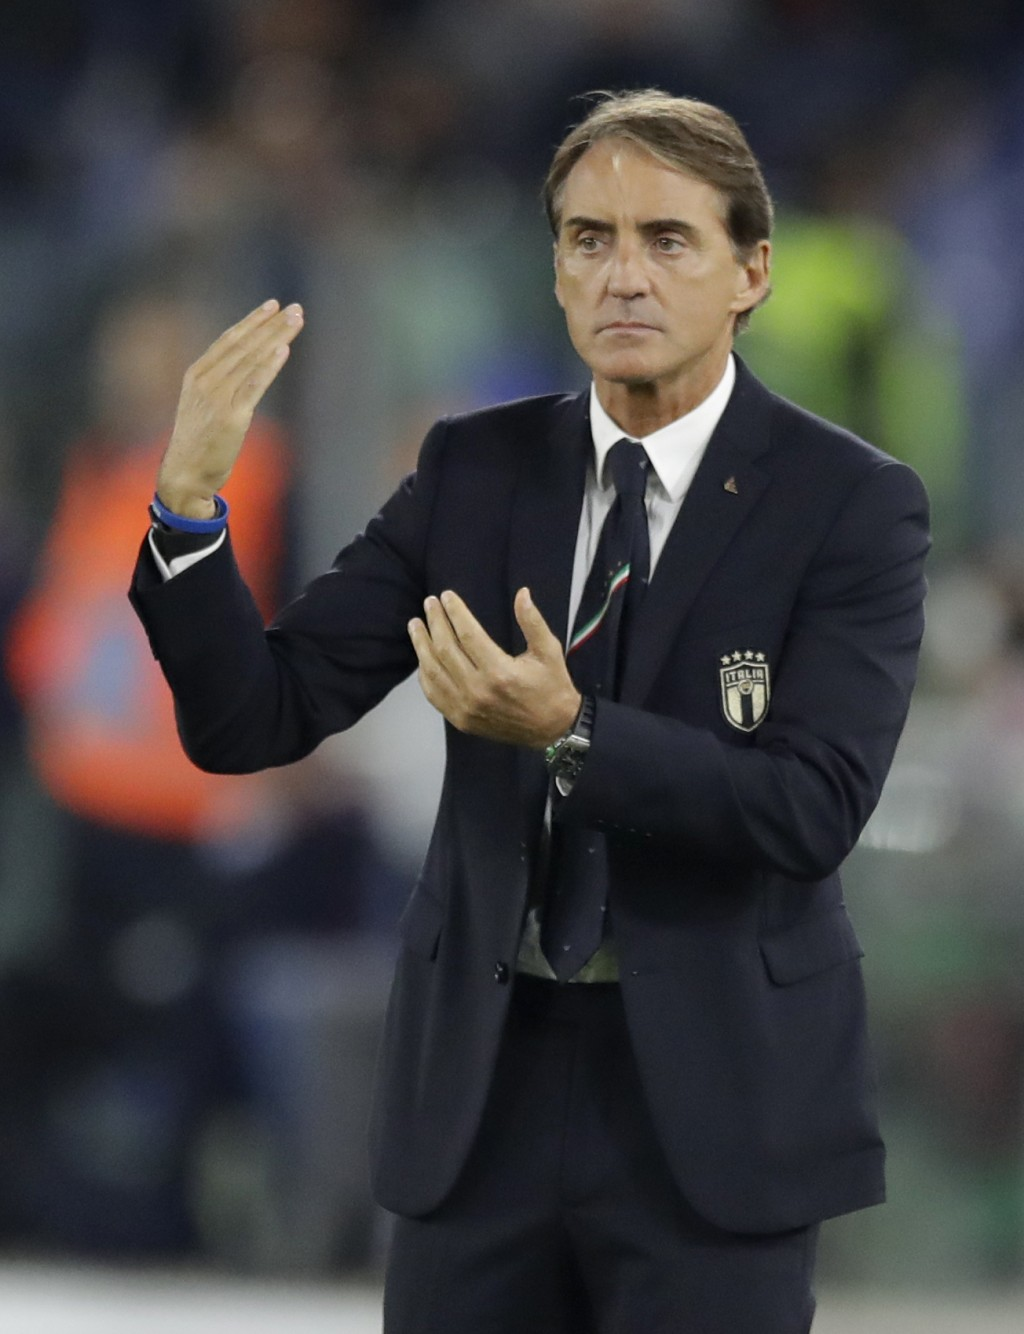 Italy coach Roberto Mancini gestures to his players during the Euro 2020 group J qualifying soccer match between Italy and Greece in Rome, Italy, Satu...